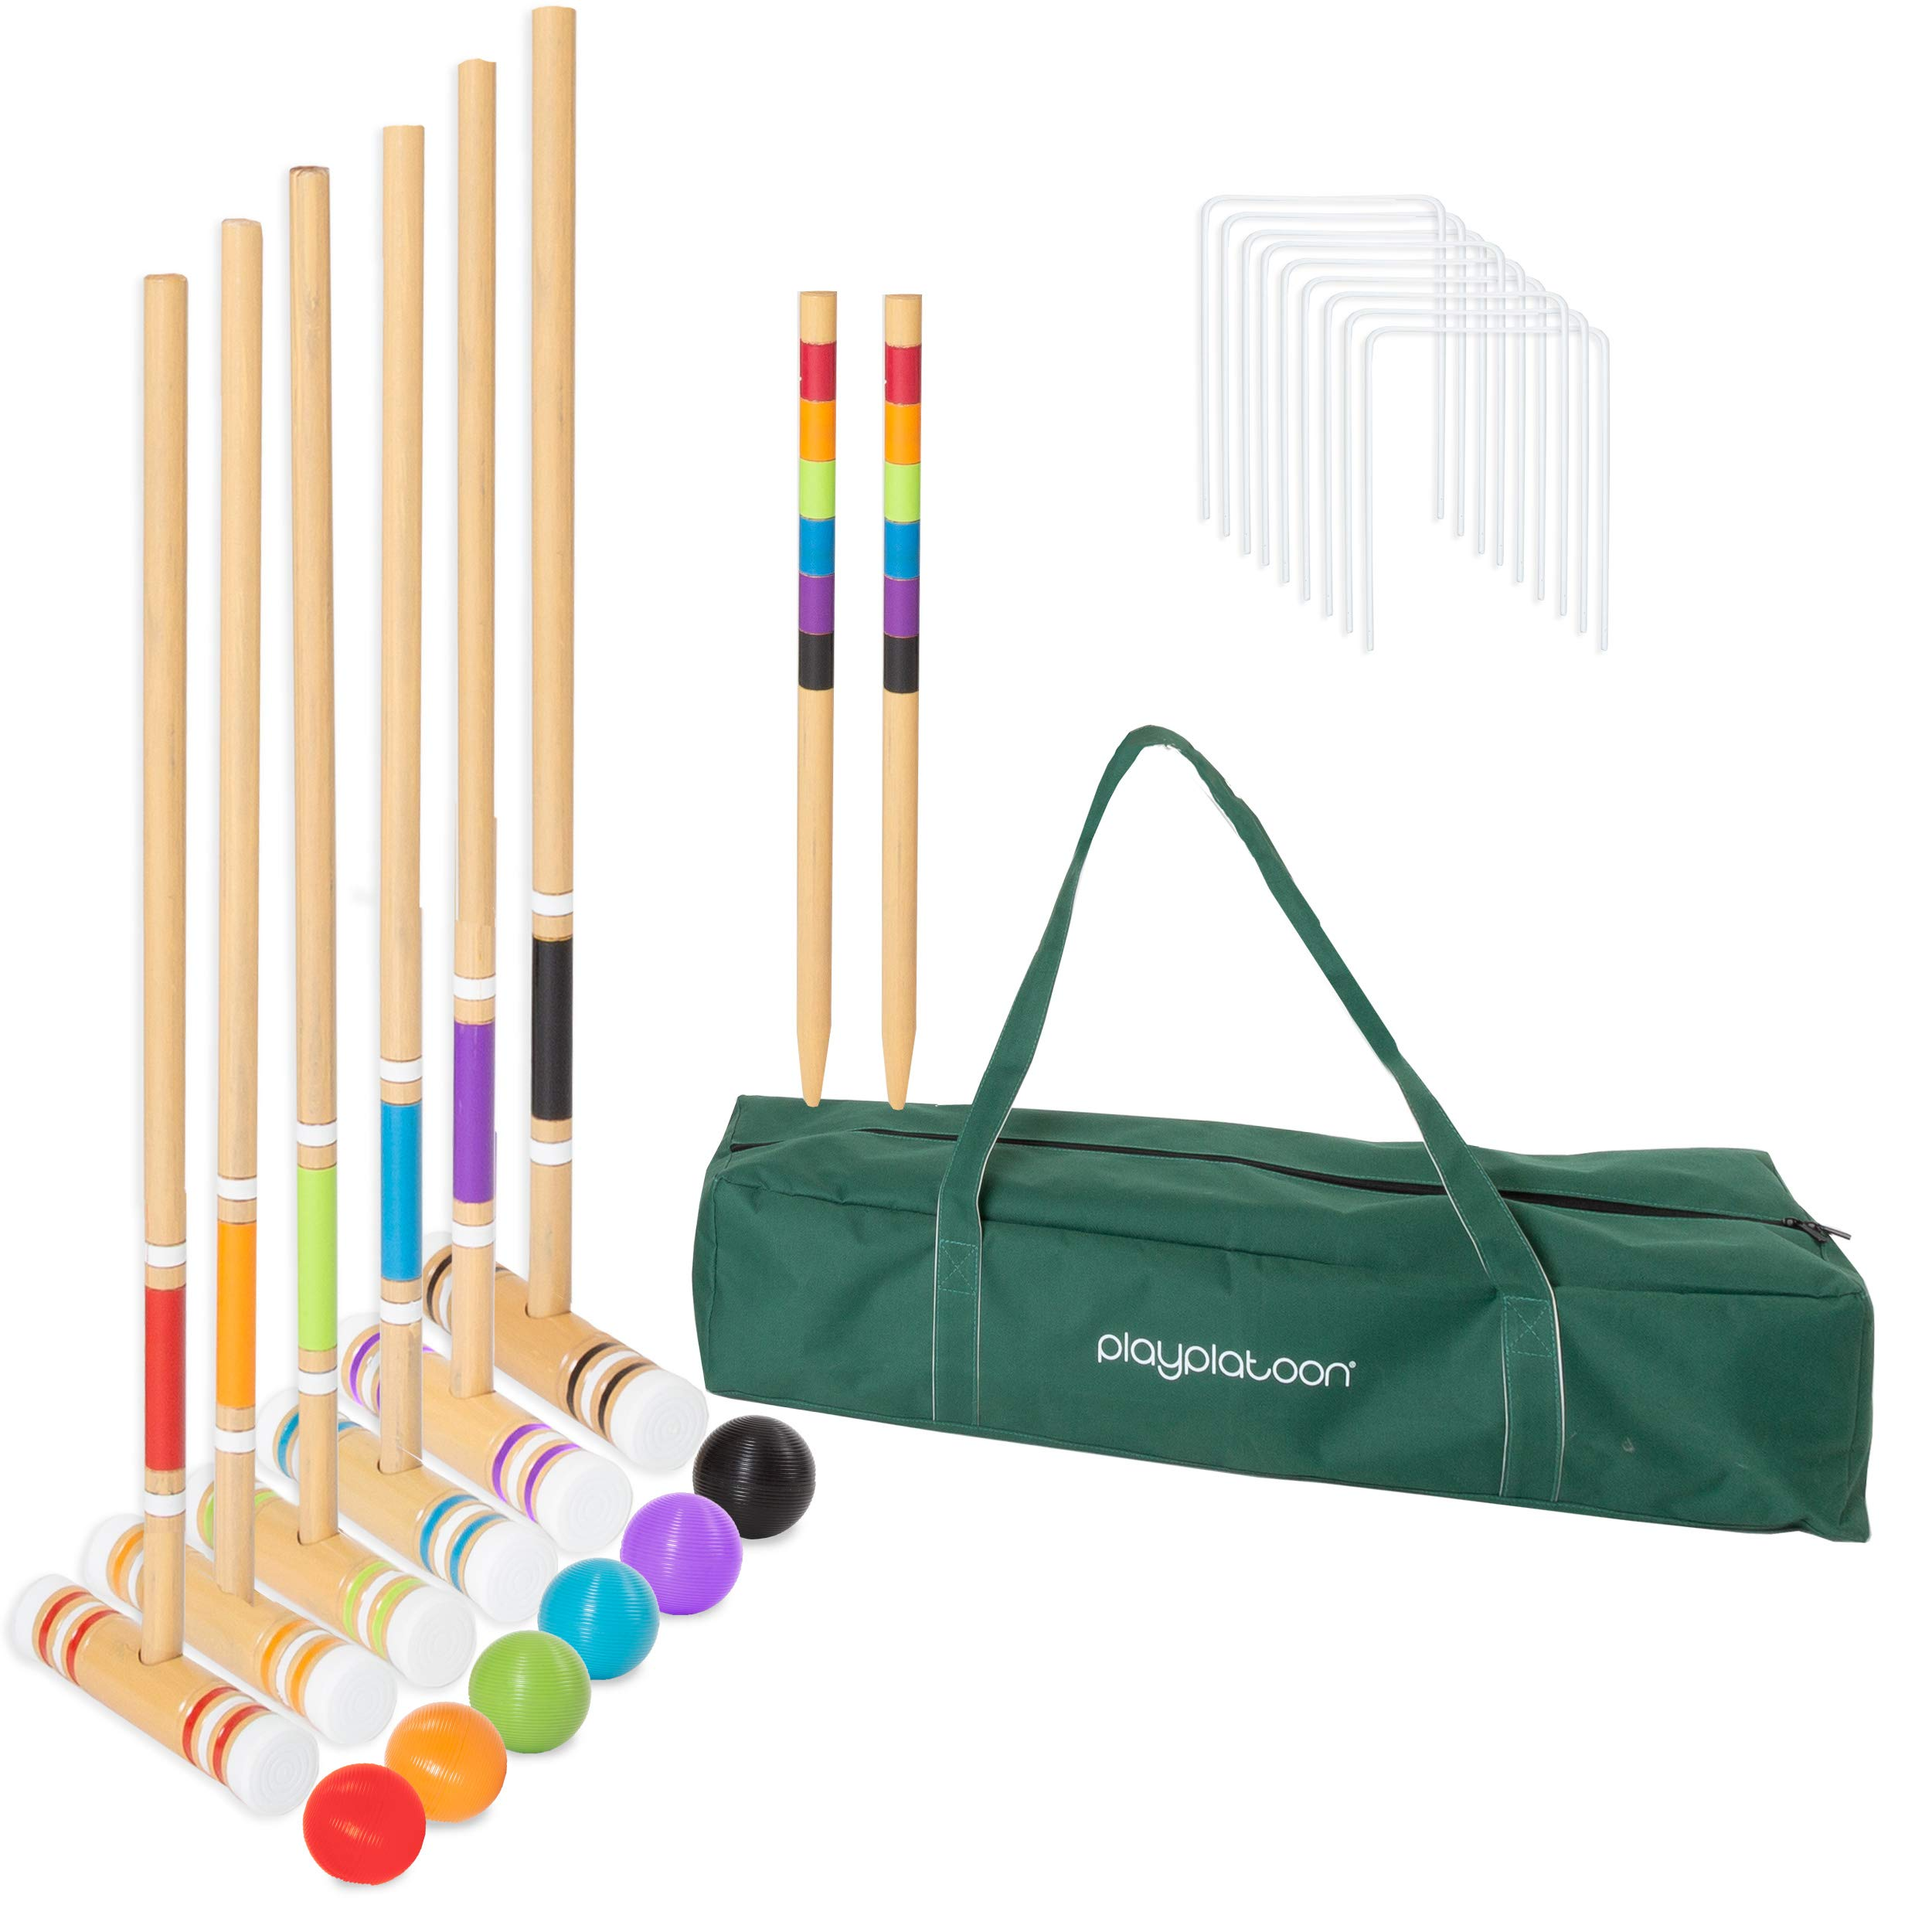 Lawn Croquet Set for Kids & Adults - Six Player Croquet Game with 6 Mallets, 6 Balls, 9 Wickets, 2 Stakes & Carry Bag by Play Platoon (Image #1)